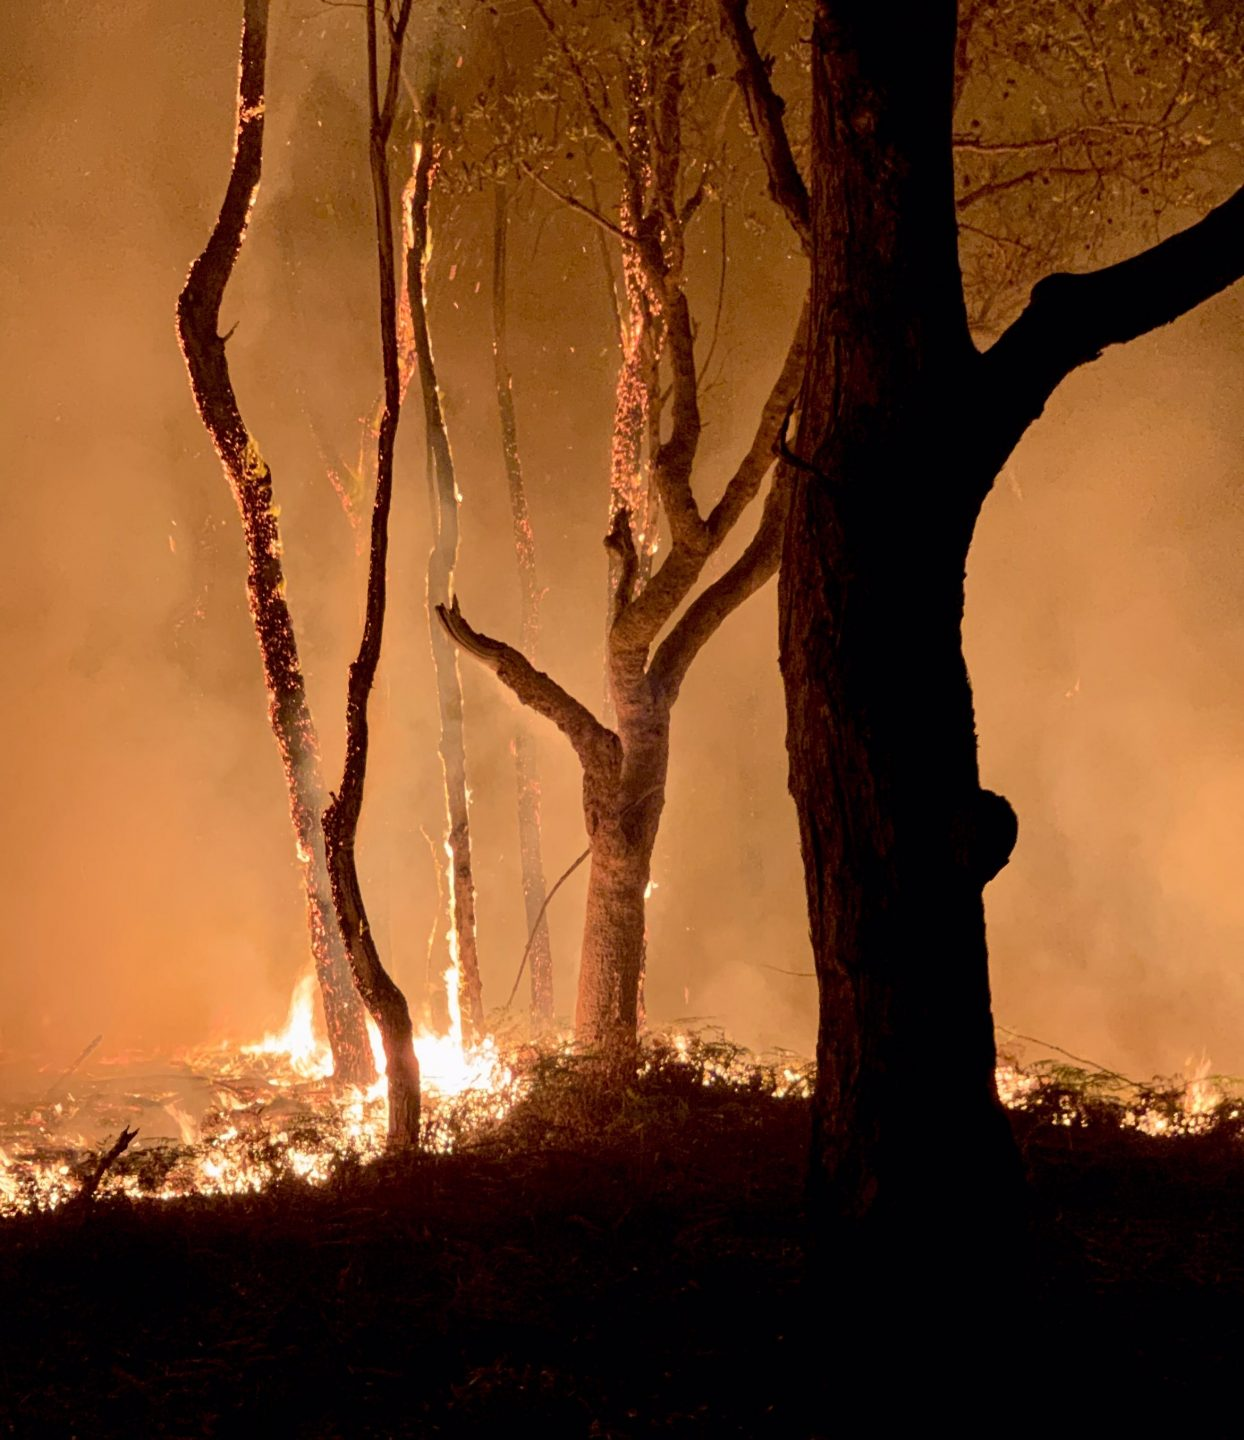 five tree trunks silhouetted in a bush fire